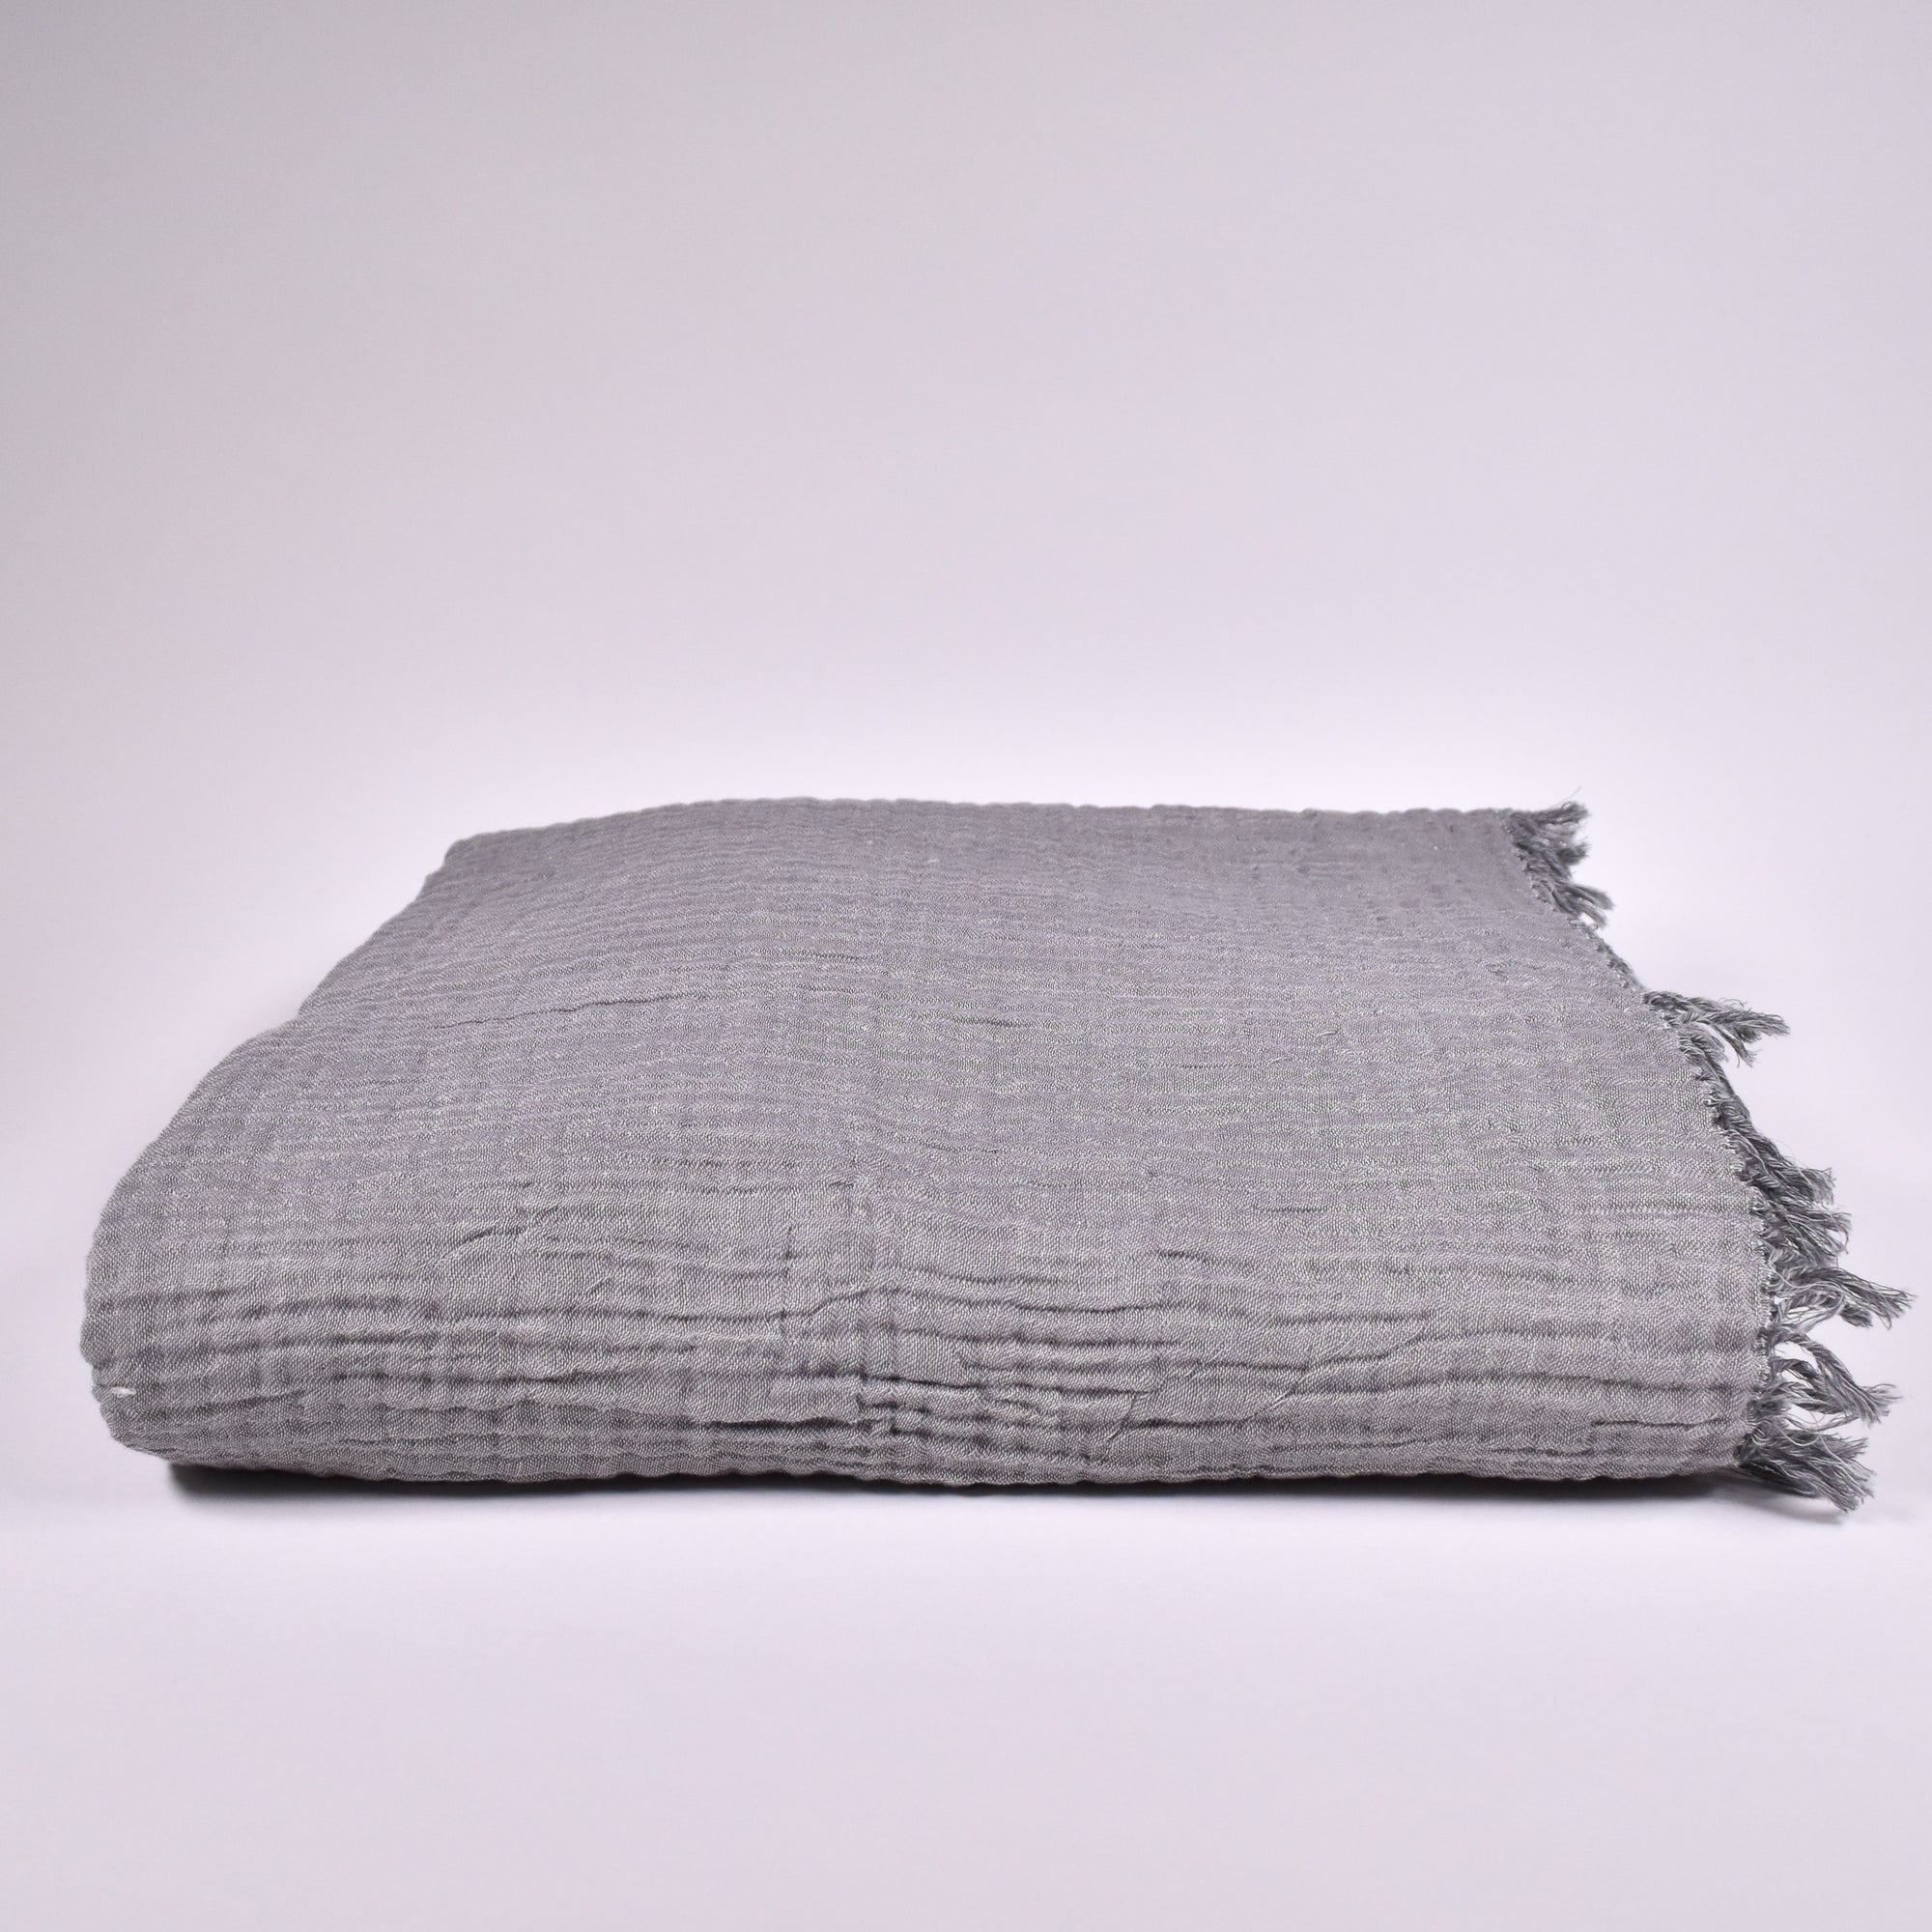 Cocoon Bed Cover - Rug & Weave